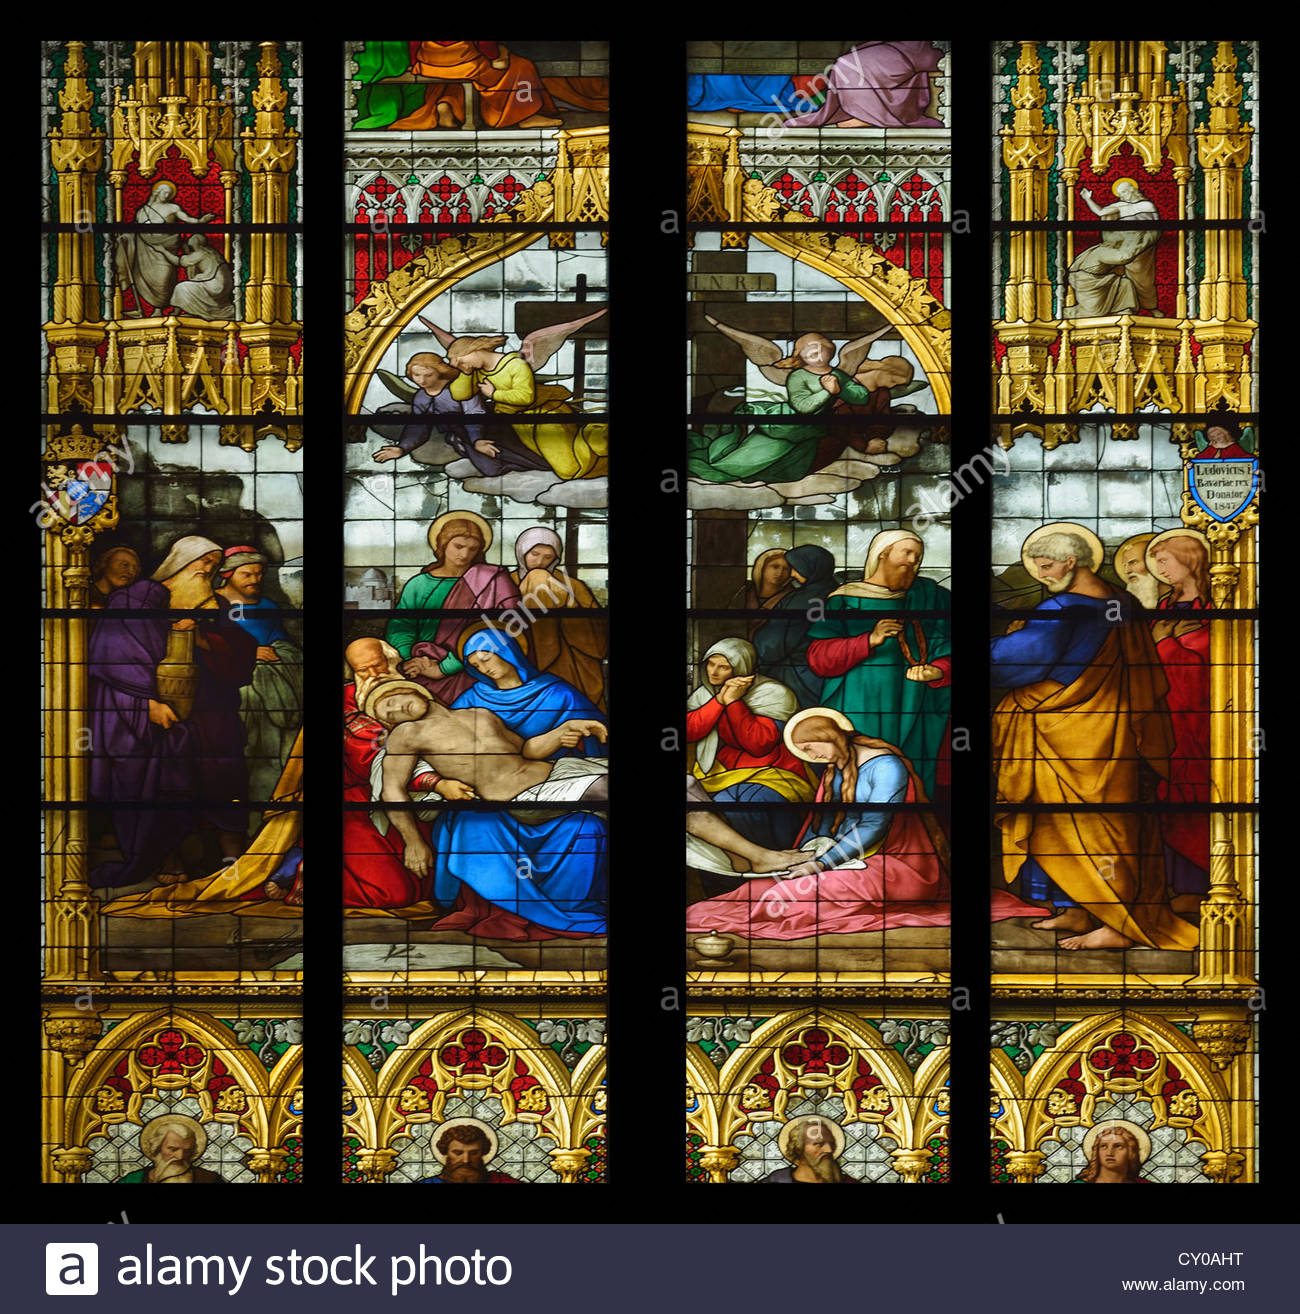 Window of the Lamentation of Christ, corpse of the Dead Christ in the arms of Mary, Cologne Cathedral - Stock Image